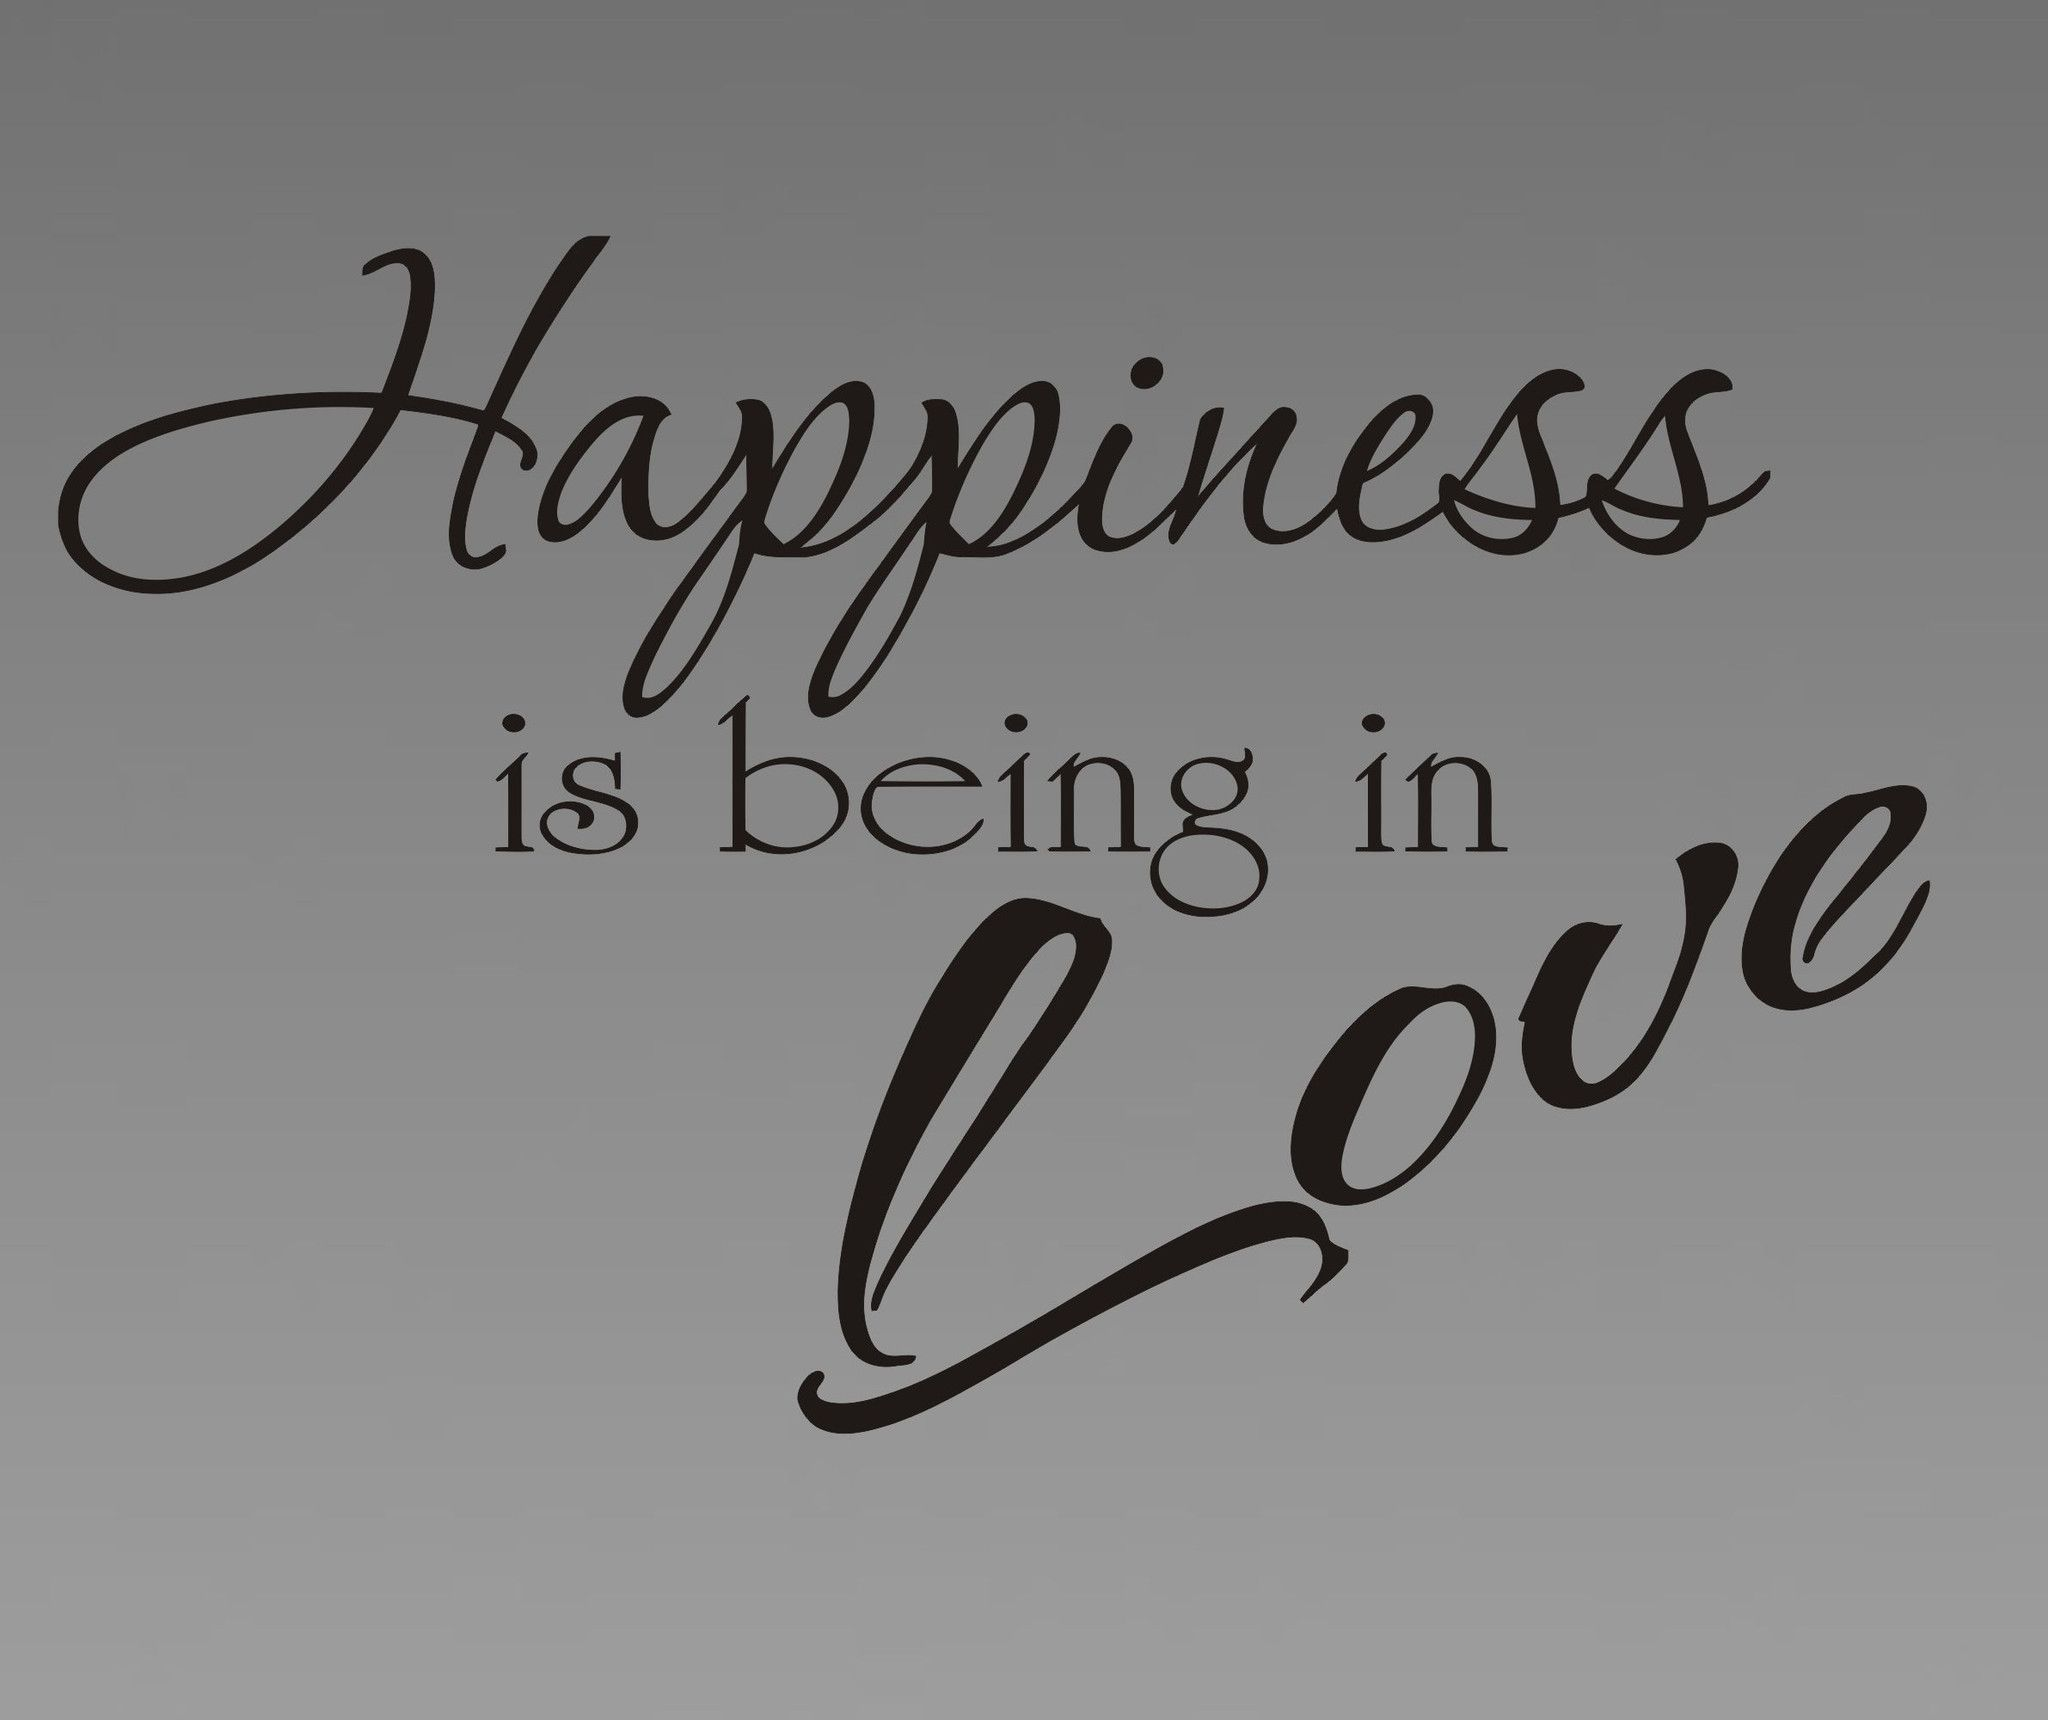 Love ... what is this Happiness or tragedy